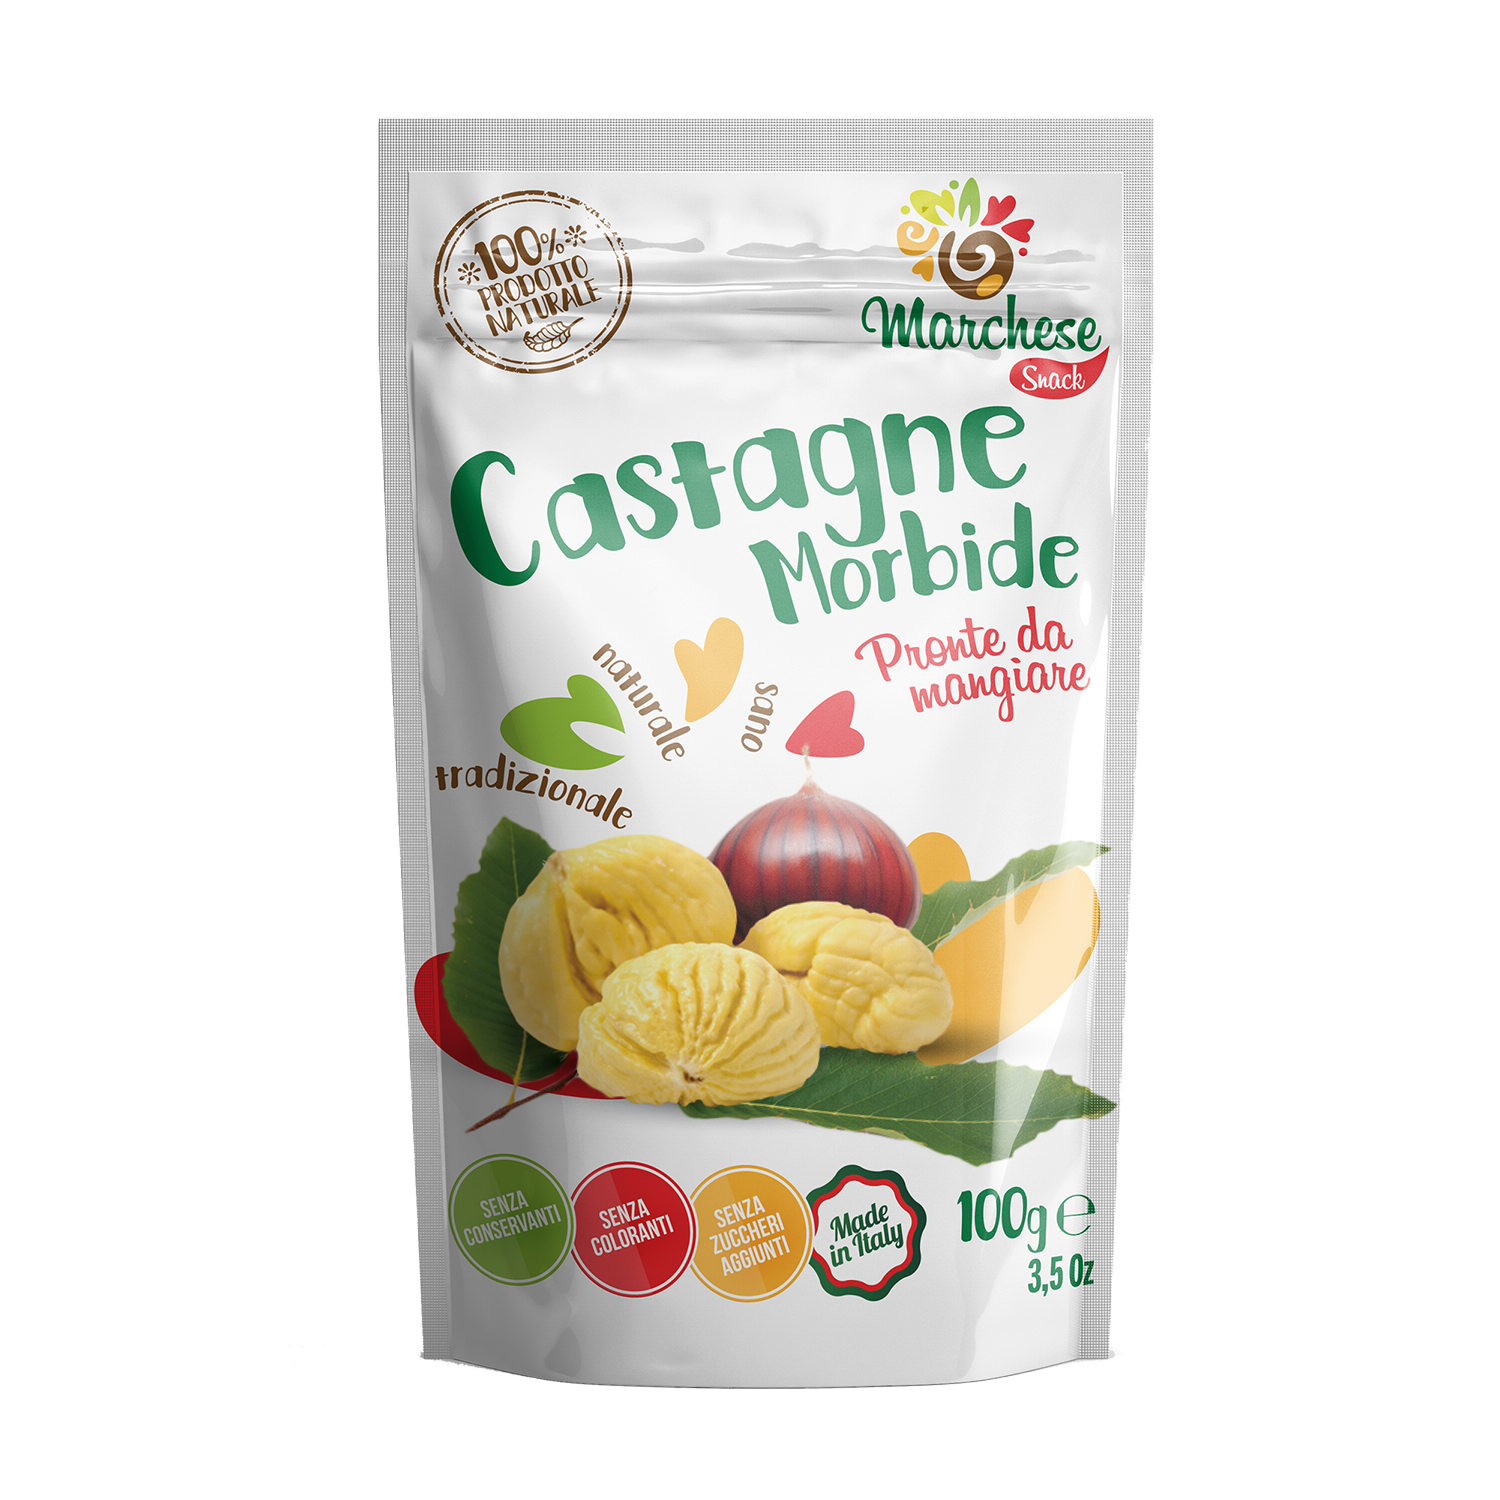 In arrivo le nuove CASTAGNE SNACK MARCHESE